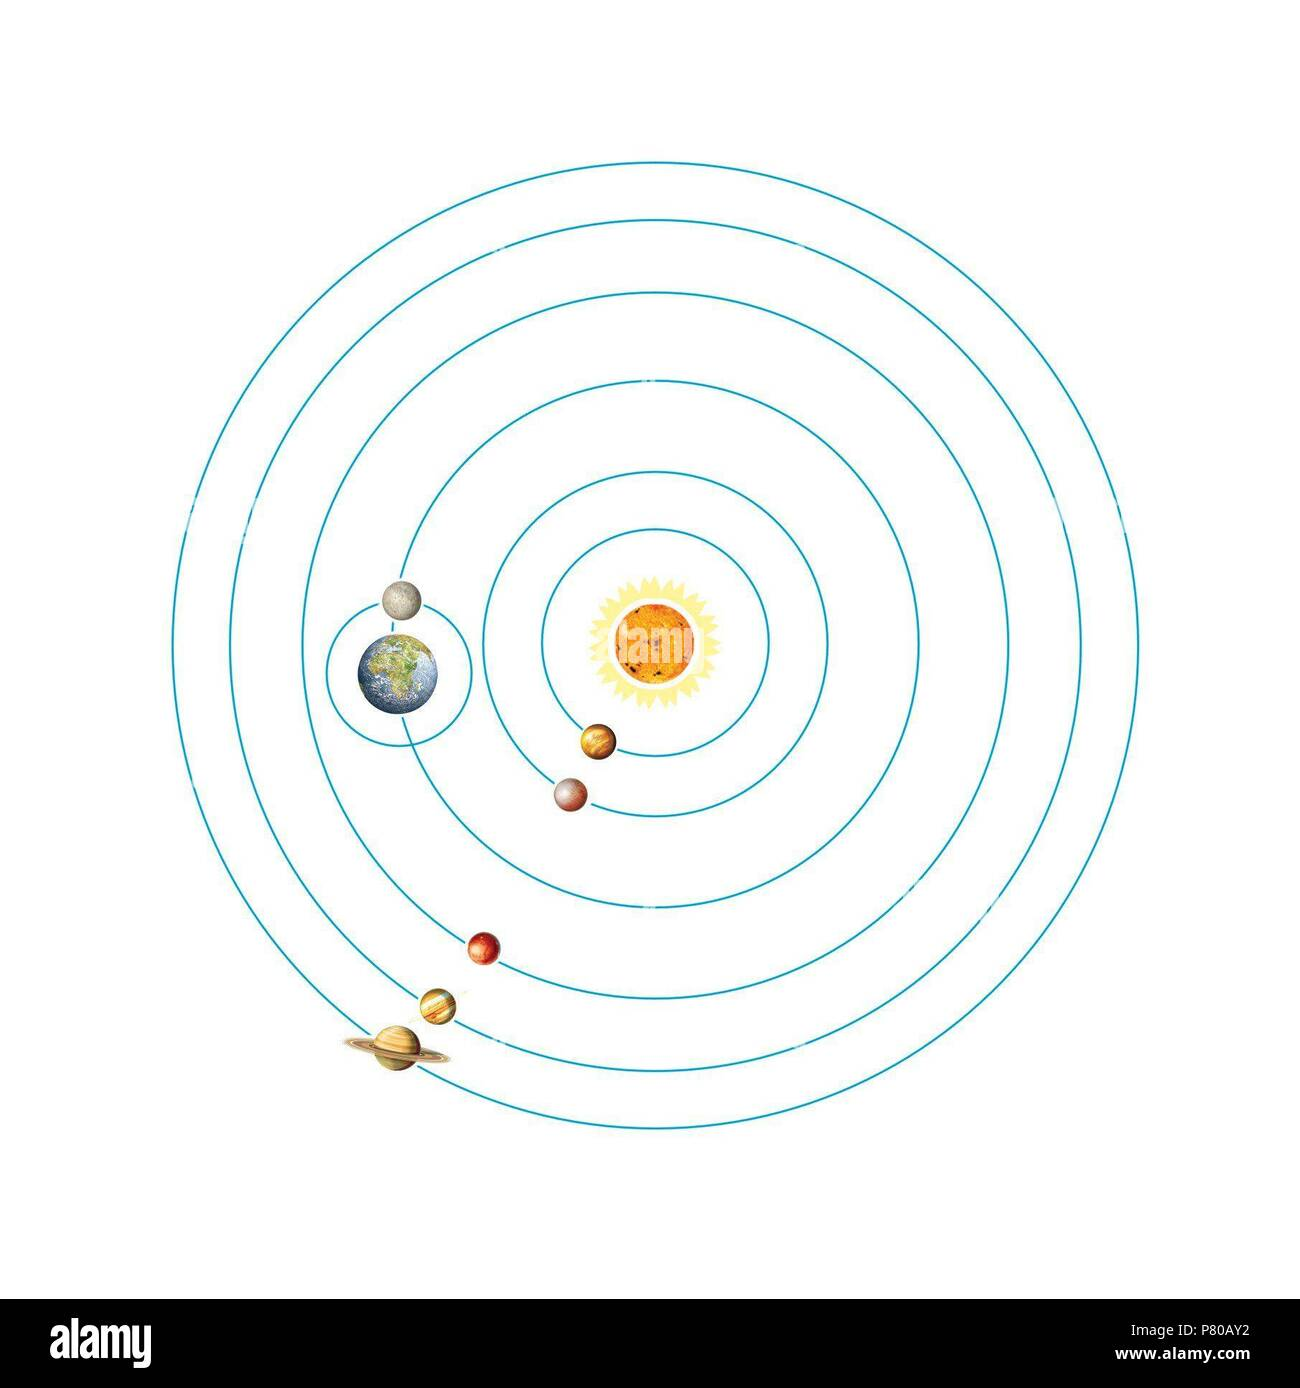 Heliocentric Theory High Resolution Stock Photography And Images Alamy